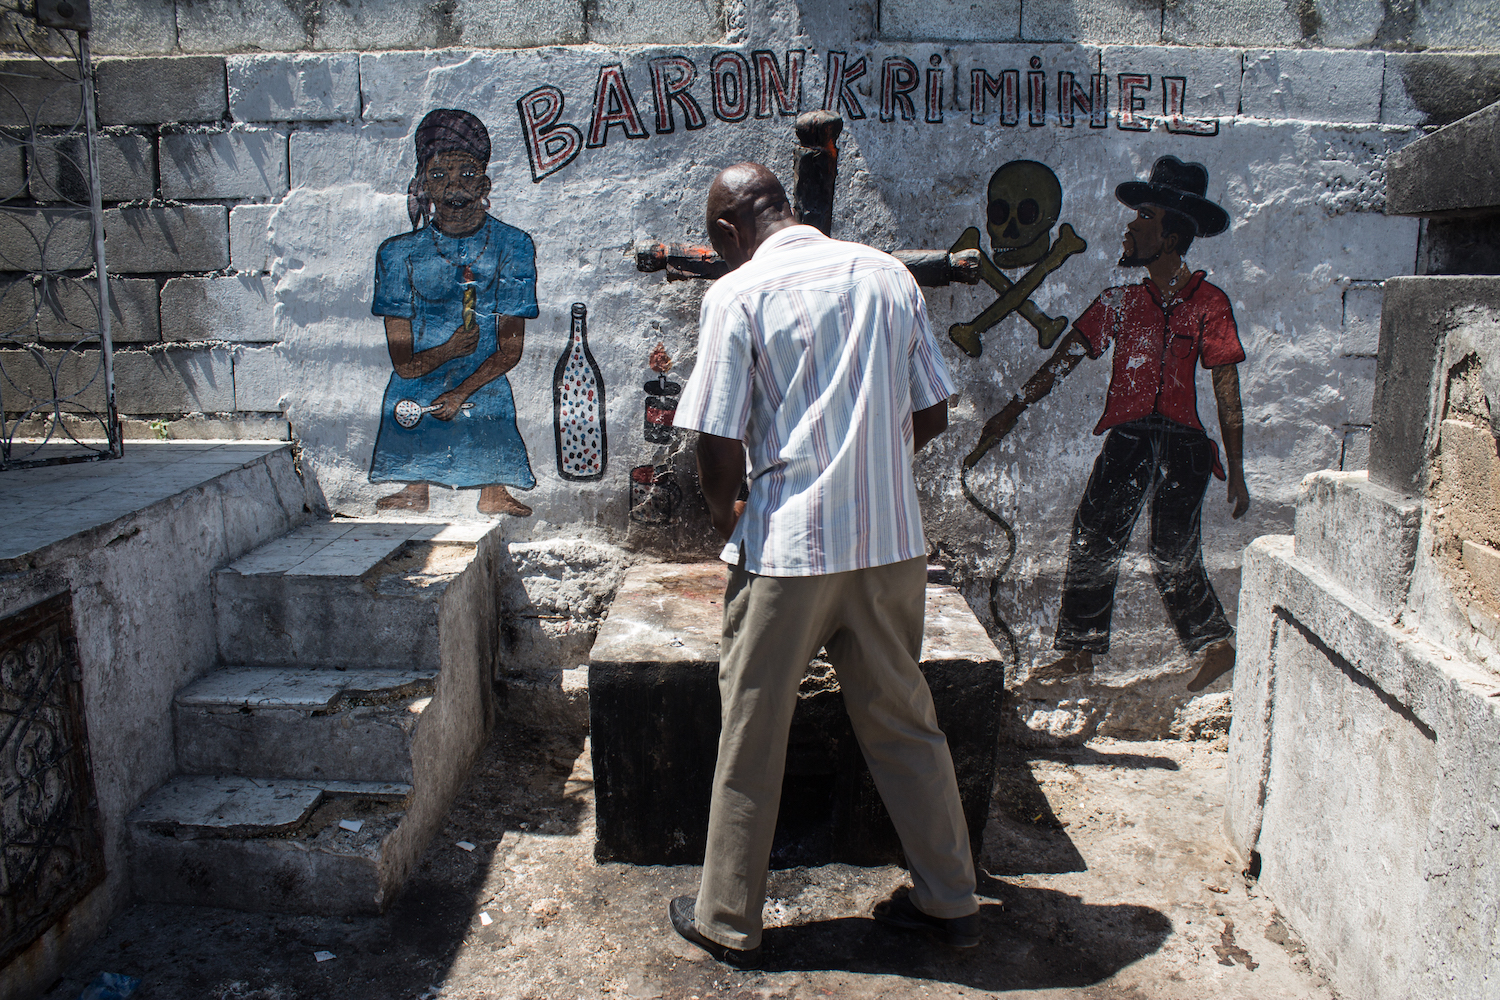 A Haitian man makes an offering to Baron Kriminel at a fire-stained altar. © Darmon Richter http://www.thebohemianblog.com/2015/04/haitian-vodou-port-au-prince.html